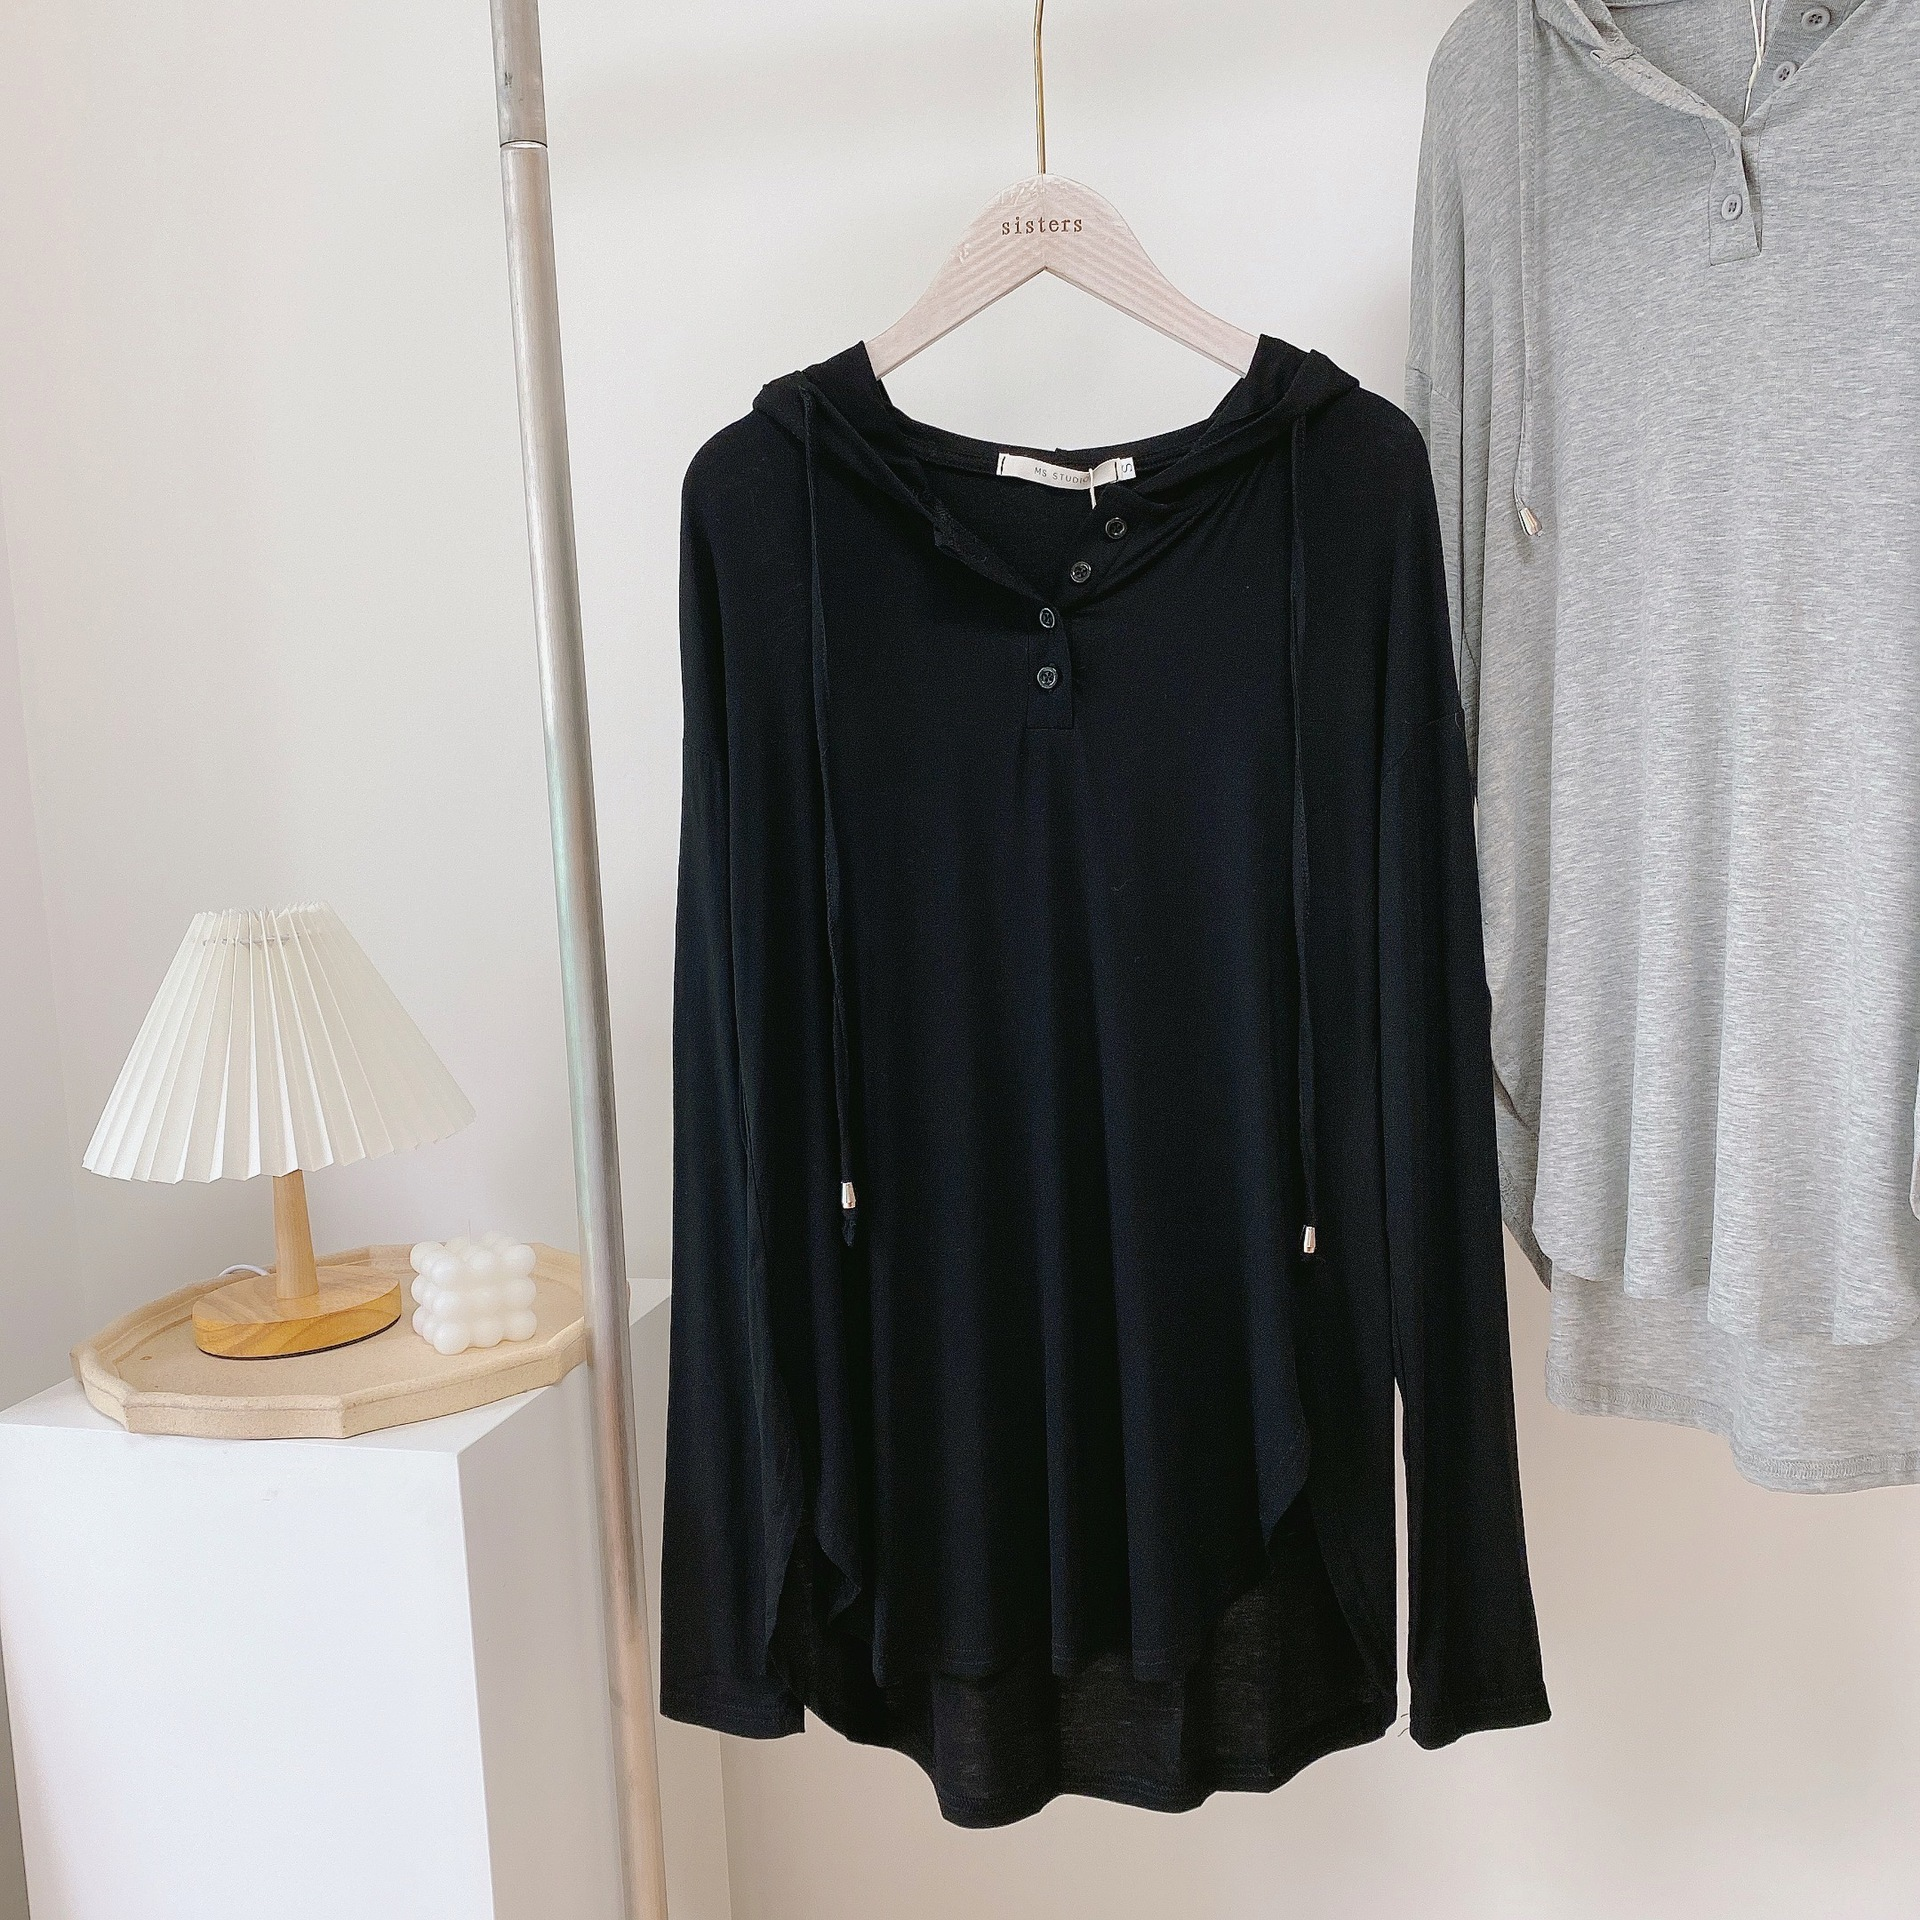 Women's Hoodie with Buttoned Neckline for Use for All Seasons